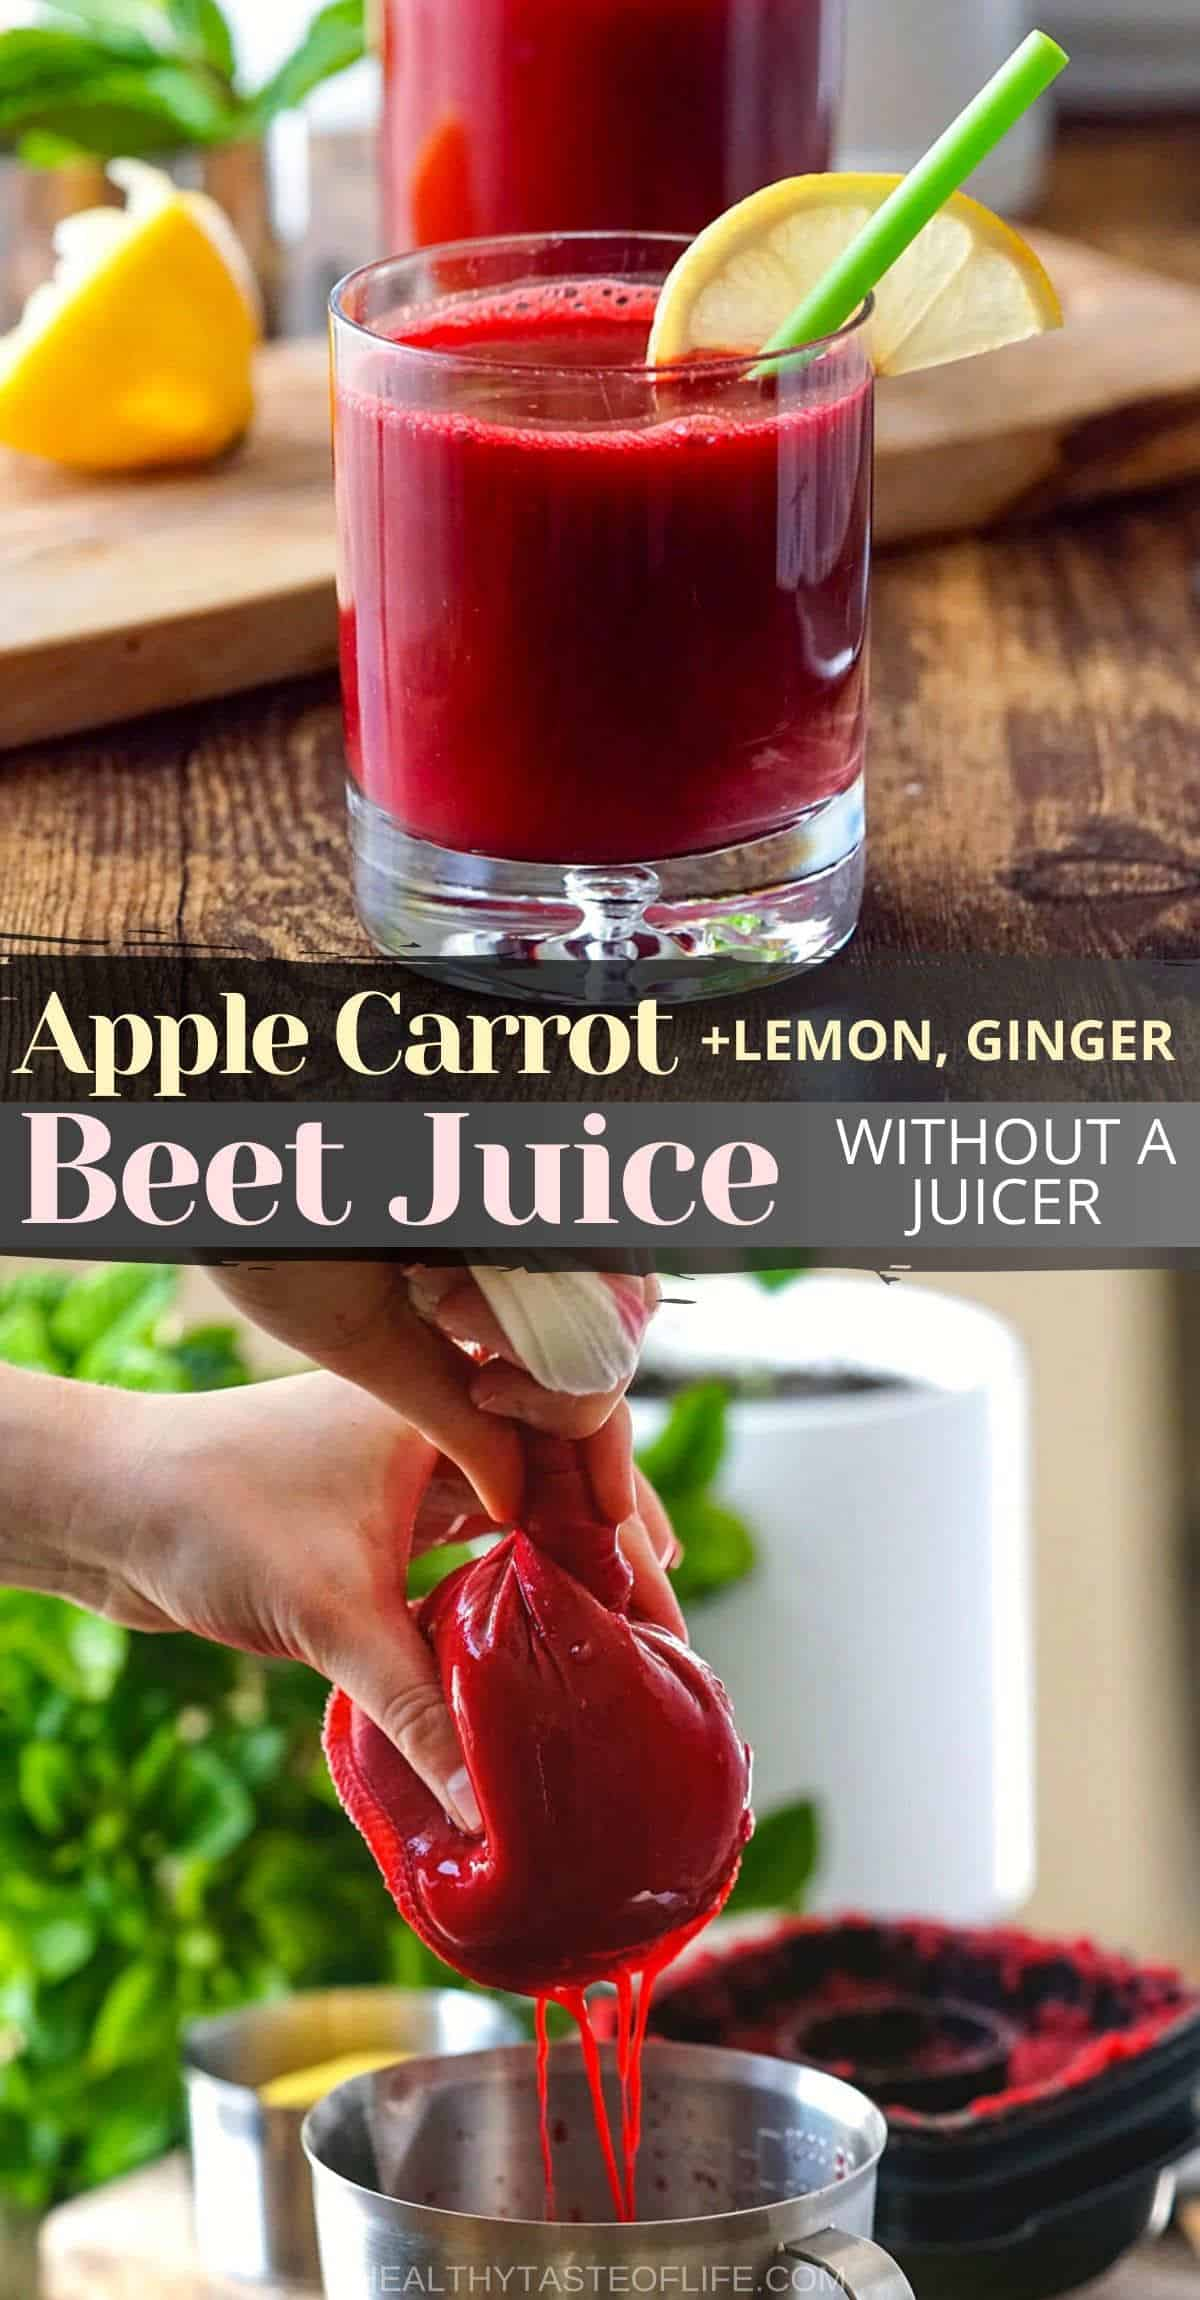 Healthy Homemade Beet juice recipe and benefits for Pinterest.